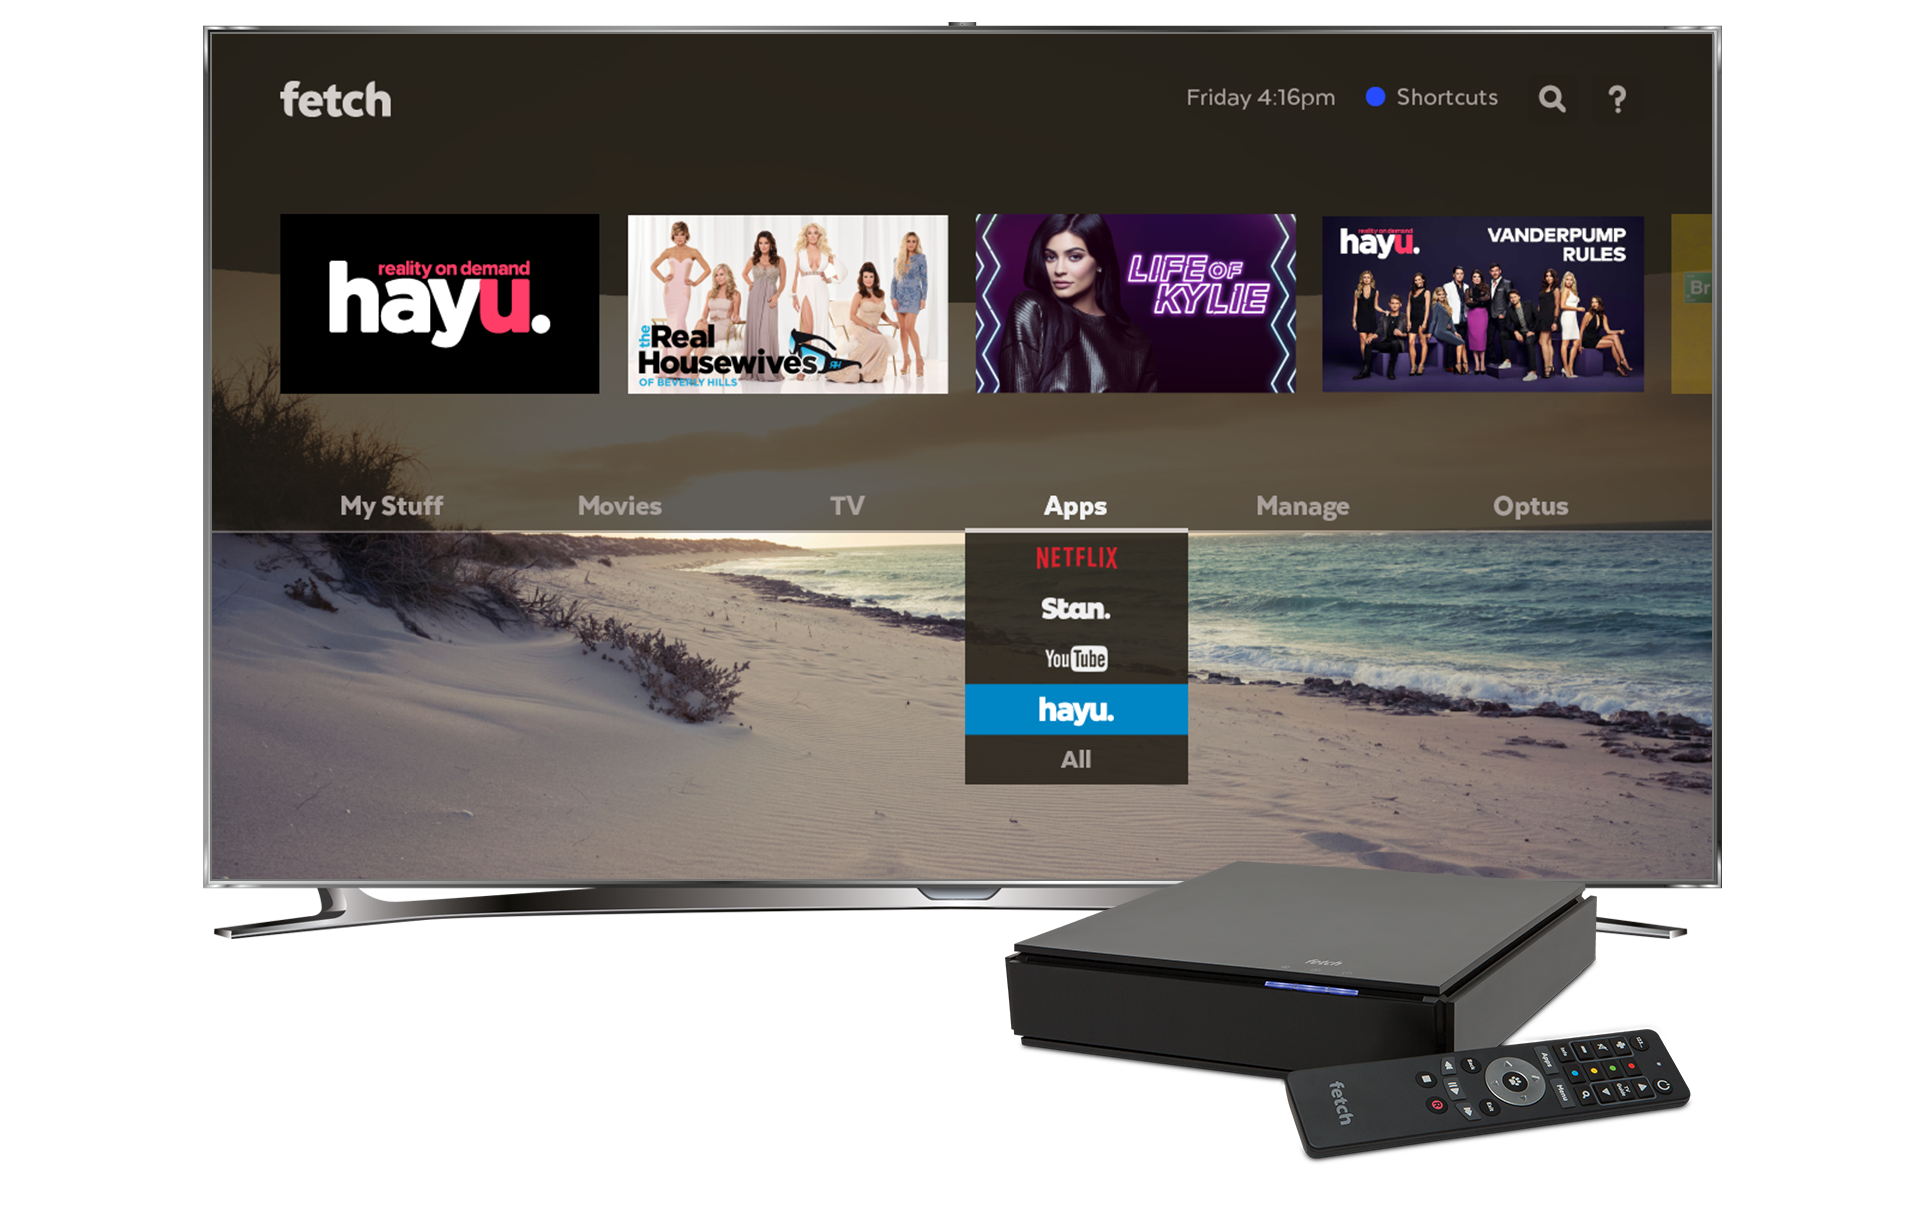 hayu comes to Fetch TV  Image - Fetch